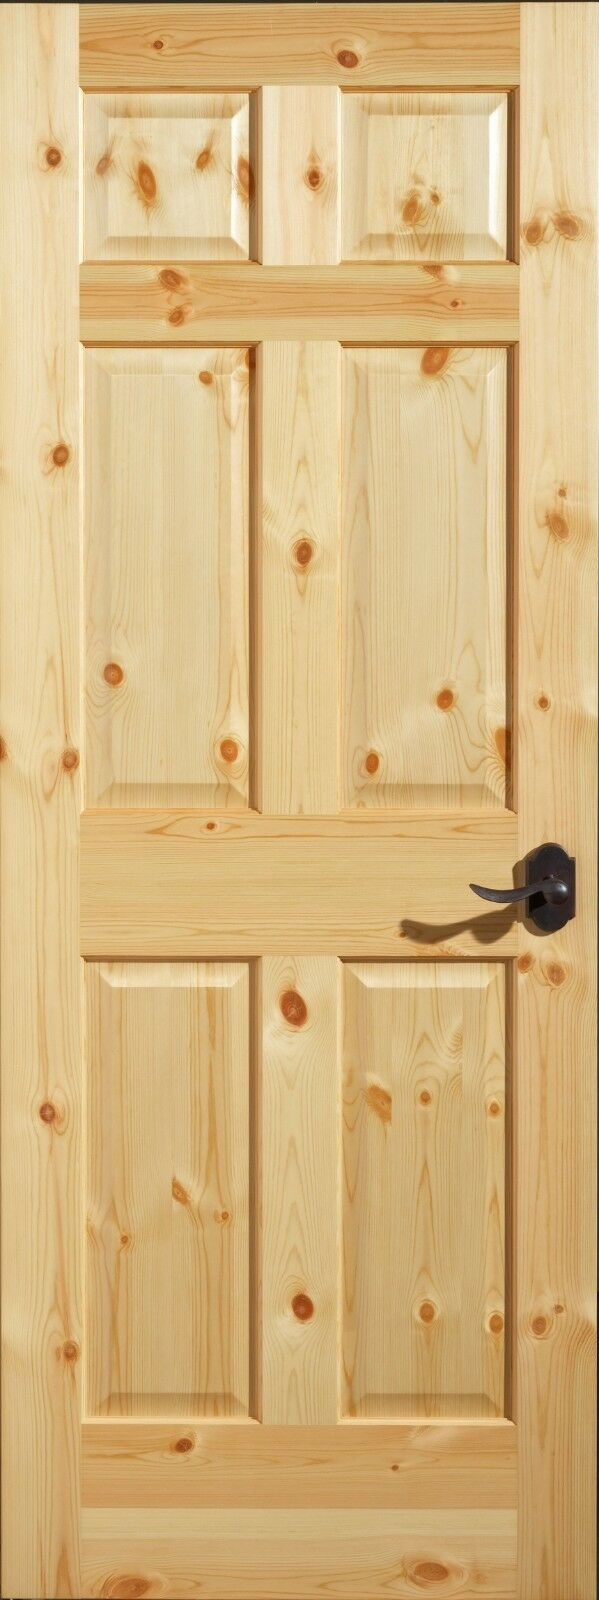 Knotty Pine 6 Panel Interior Door, Slab or Prehung. MANY SIZES.